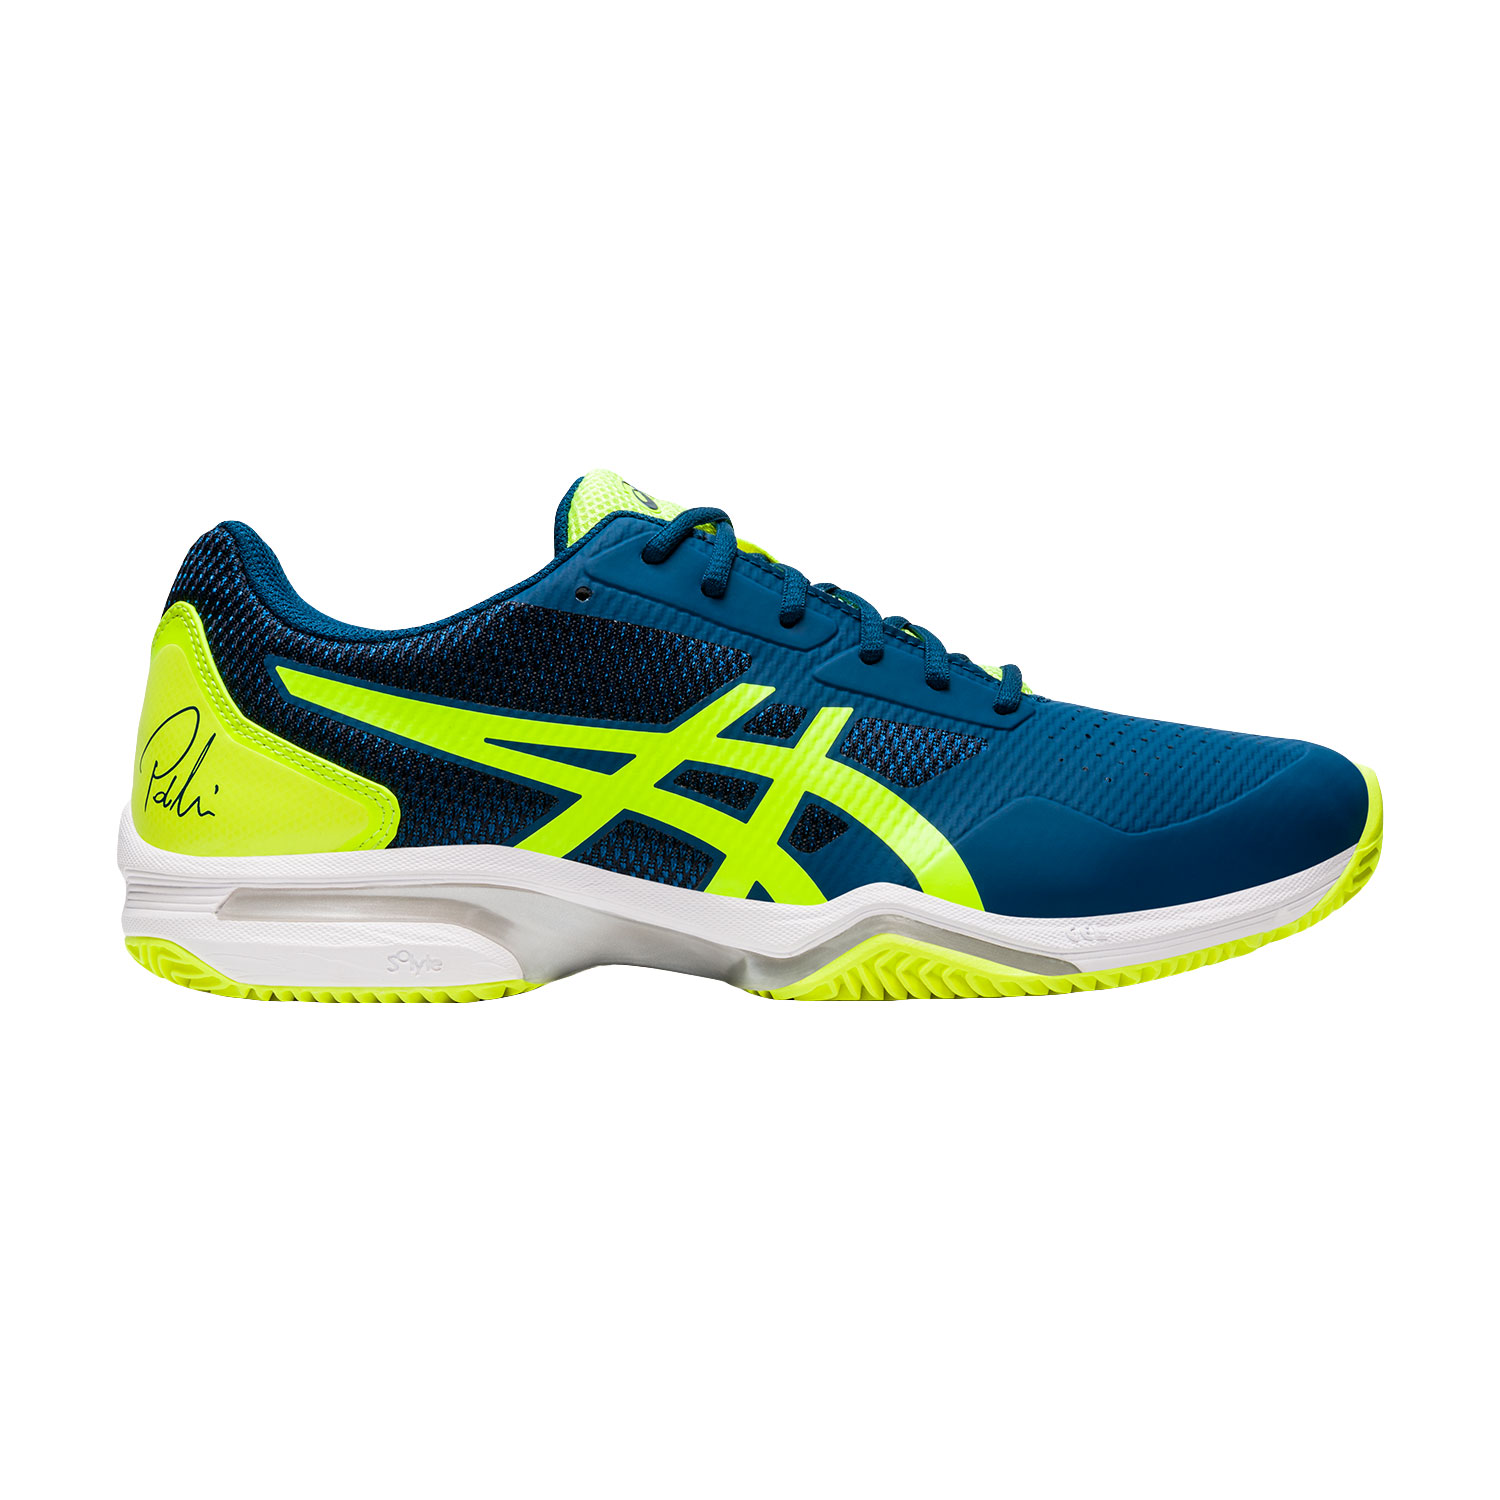 best asics hombre running zapatillas for flat feet outlet ...